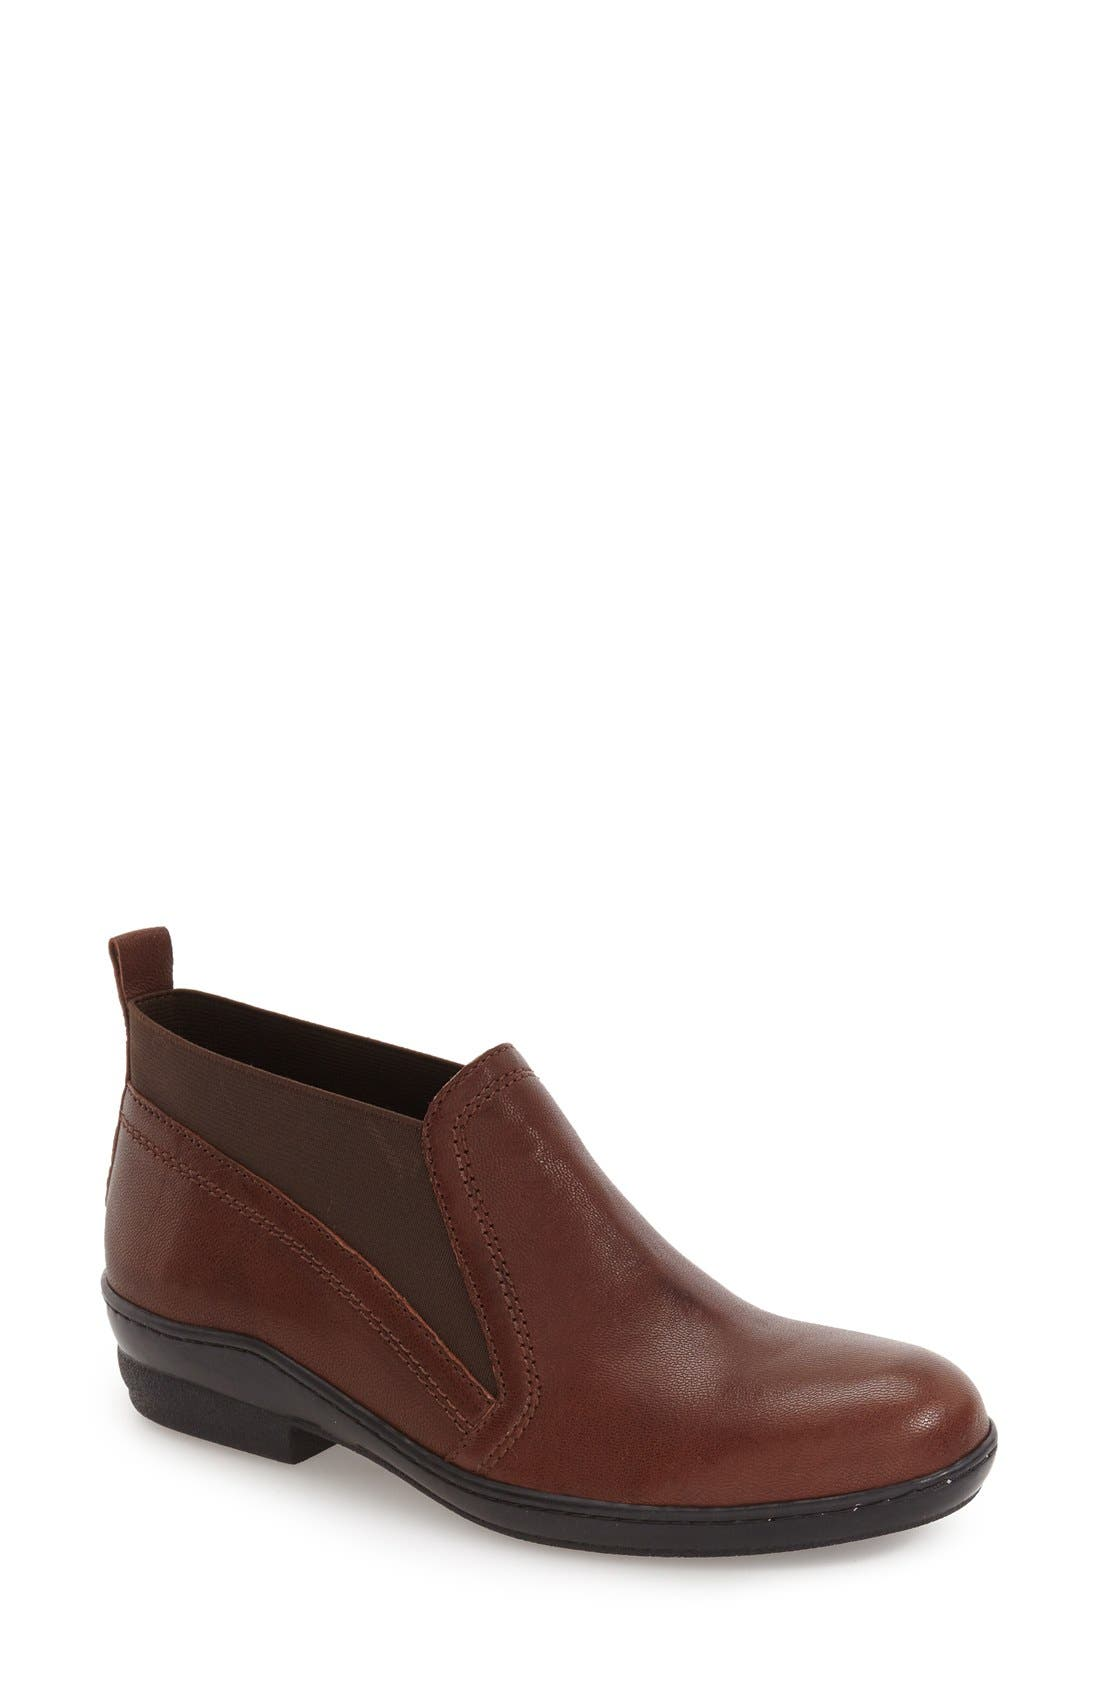 Main Image - David Tate 'Naya' Chelsea Boot (Women)